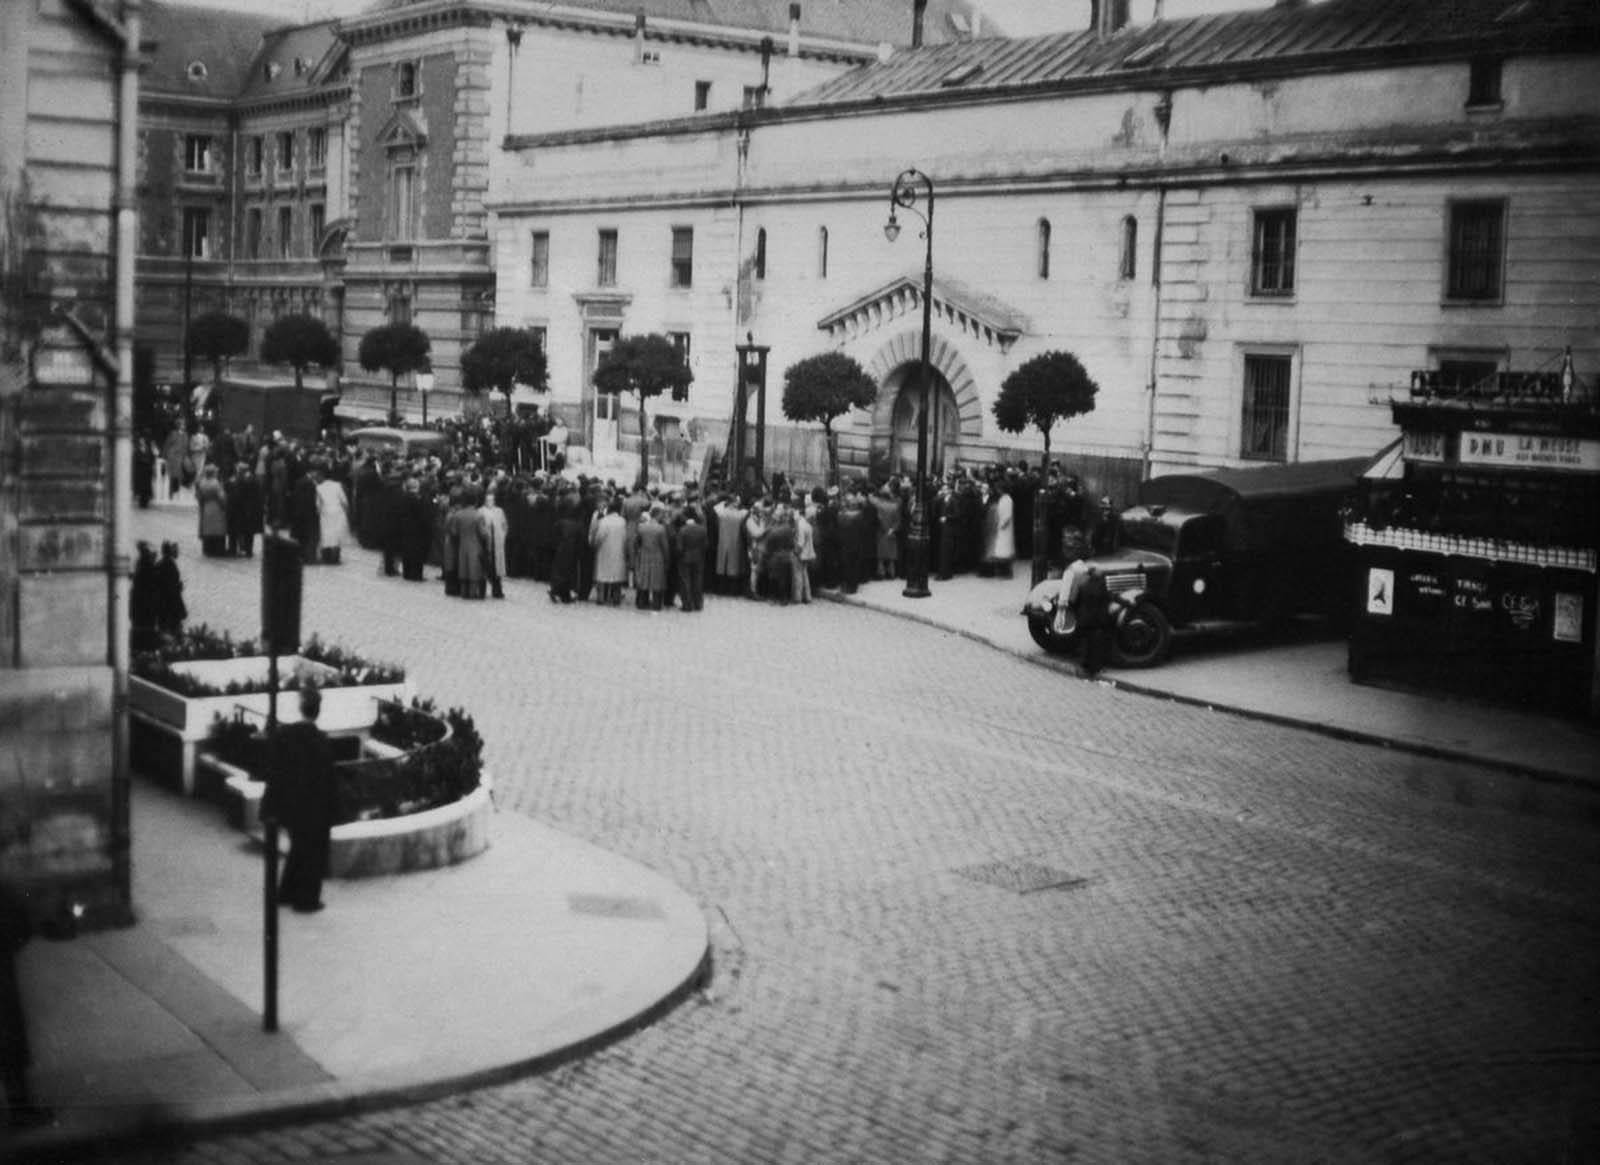 A crowd awaiting Weidmann's execution gathers around the guillotine outside the Prison Saint-Pierre.